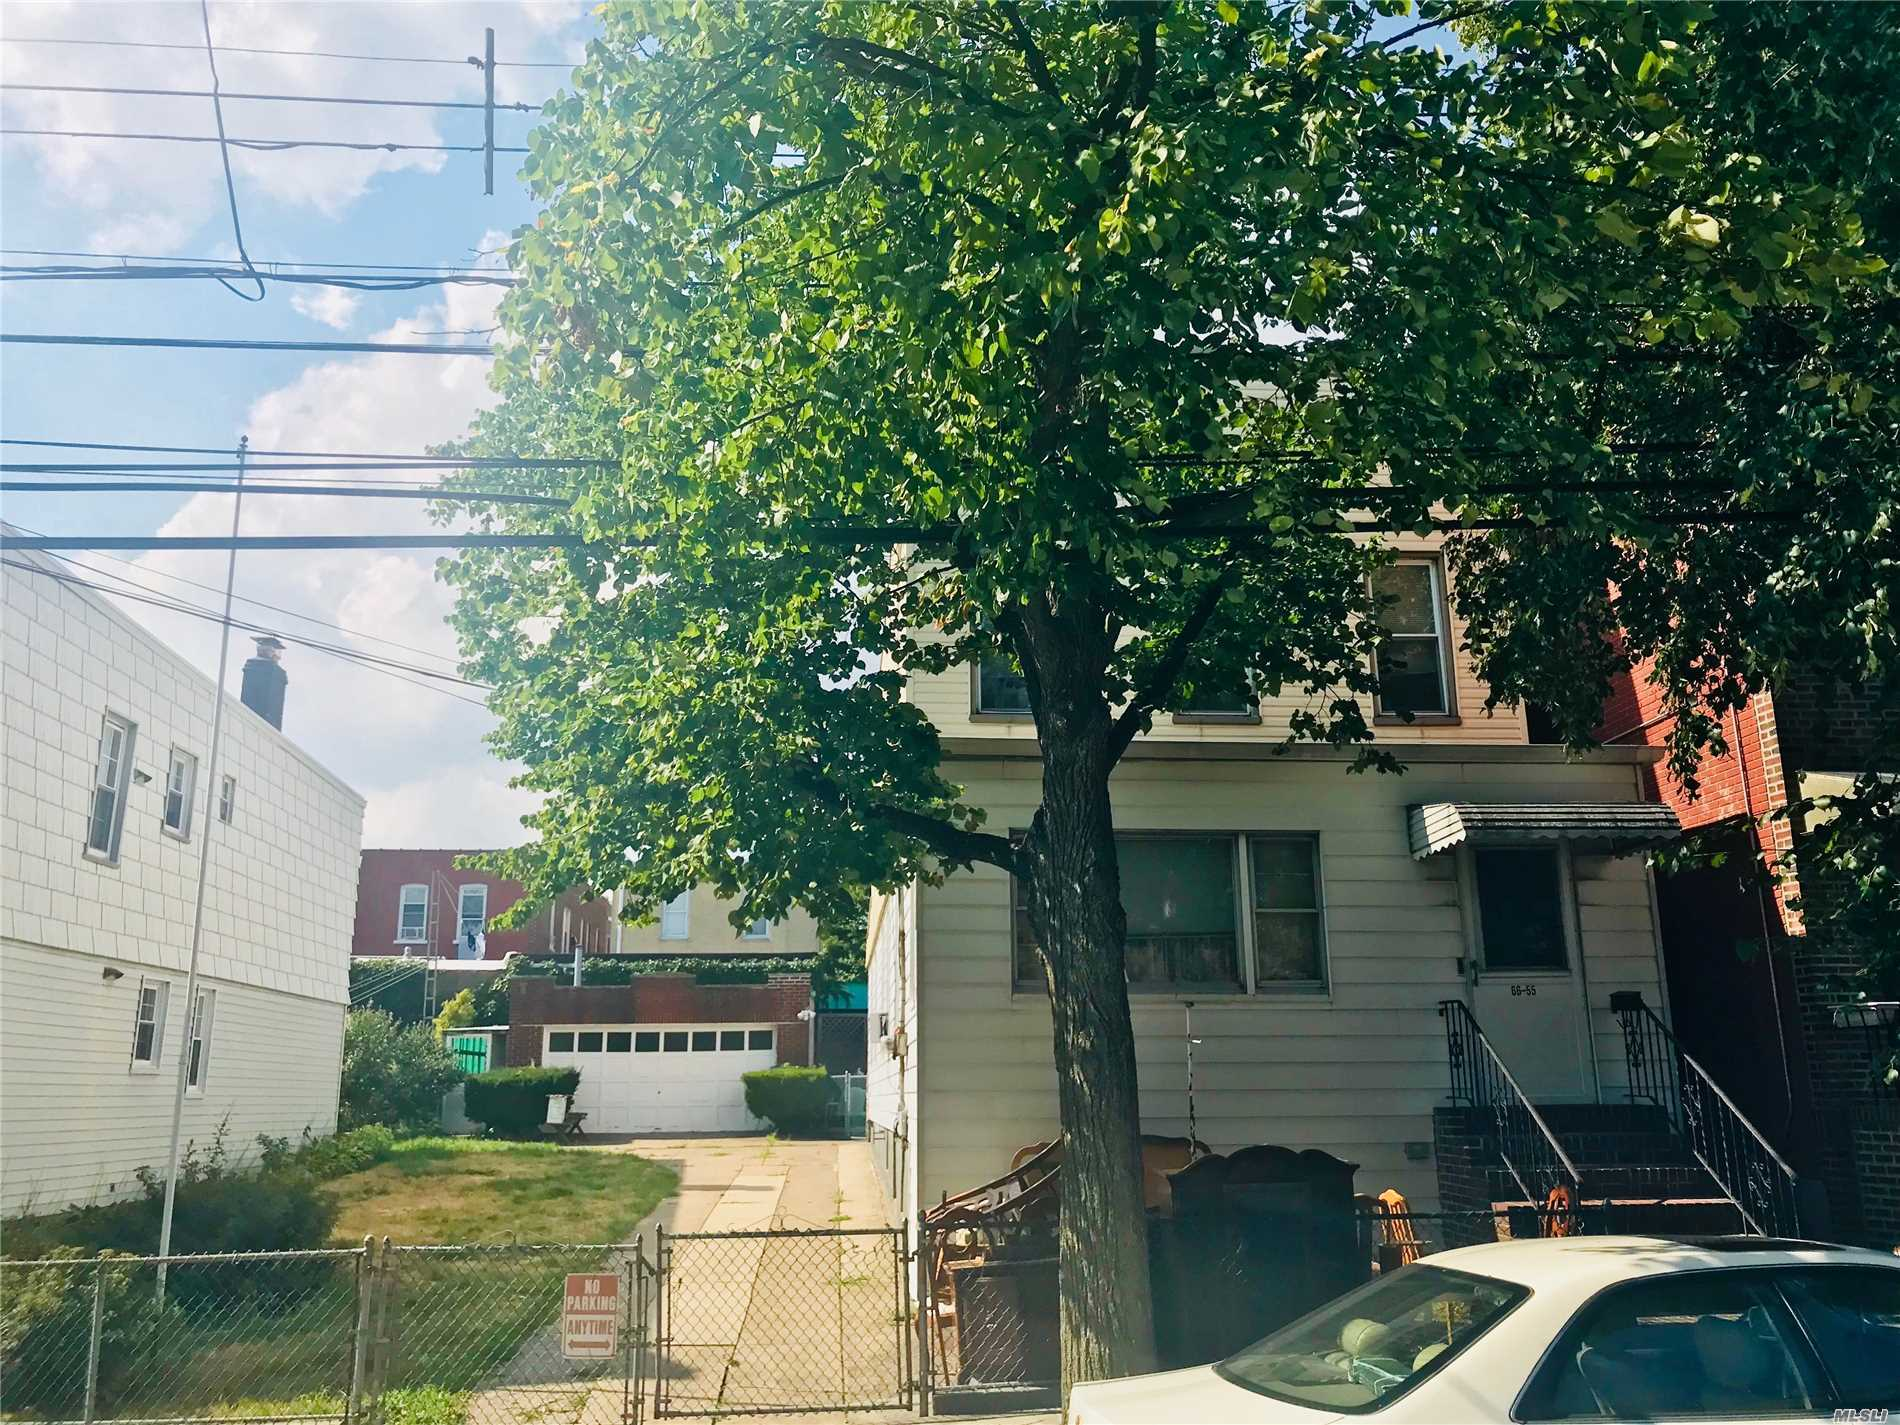 Existing Home Is A Large Two Family Home Approx 20?56 With 1766 Interior Square Feet. Home Features Identical Lay Outs Of 3 Bedrooms, Living Room, Dining Area, Kitchen And Full Bath. Full Basement With Working Washer And Dryer, Oil Tank And Half Bathroom. Basement Already Equipped With Separate Outside Entrance.  Adjacent Lot Is A Landscaped Garden Area With Driveway And Detached 2 Car Garage. Home Also Has A Concrete Back Patio Perfect For Enjoying Those Beautiful Queens Evenings.